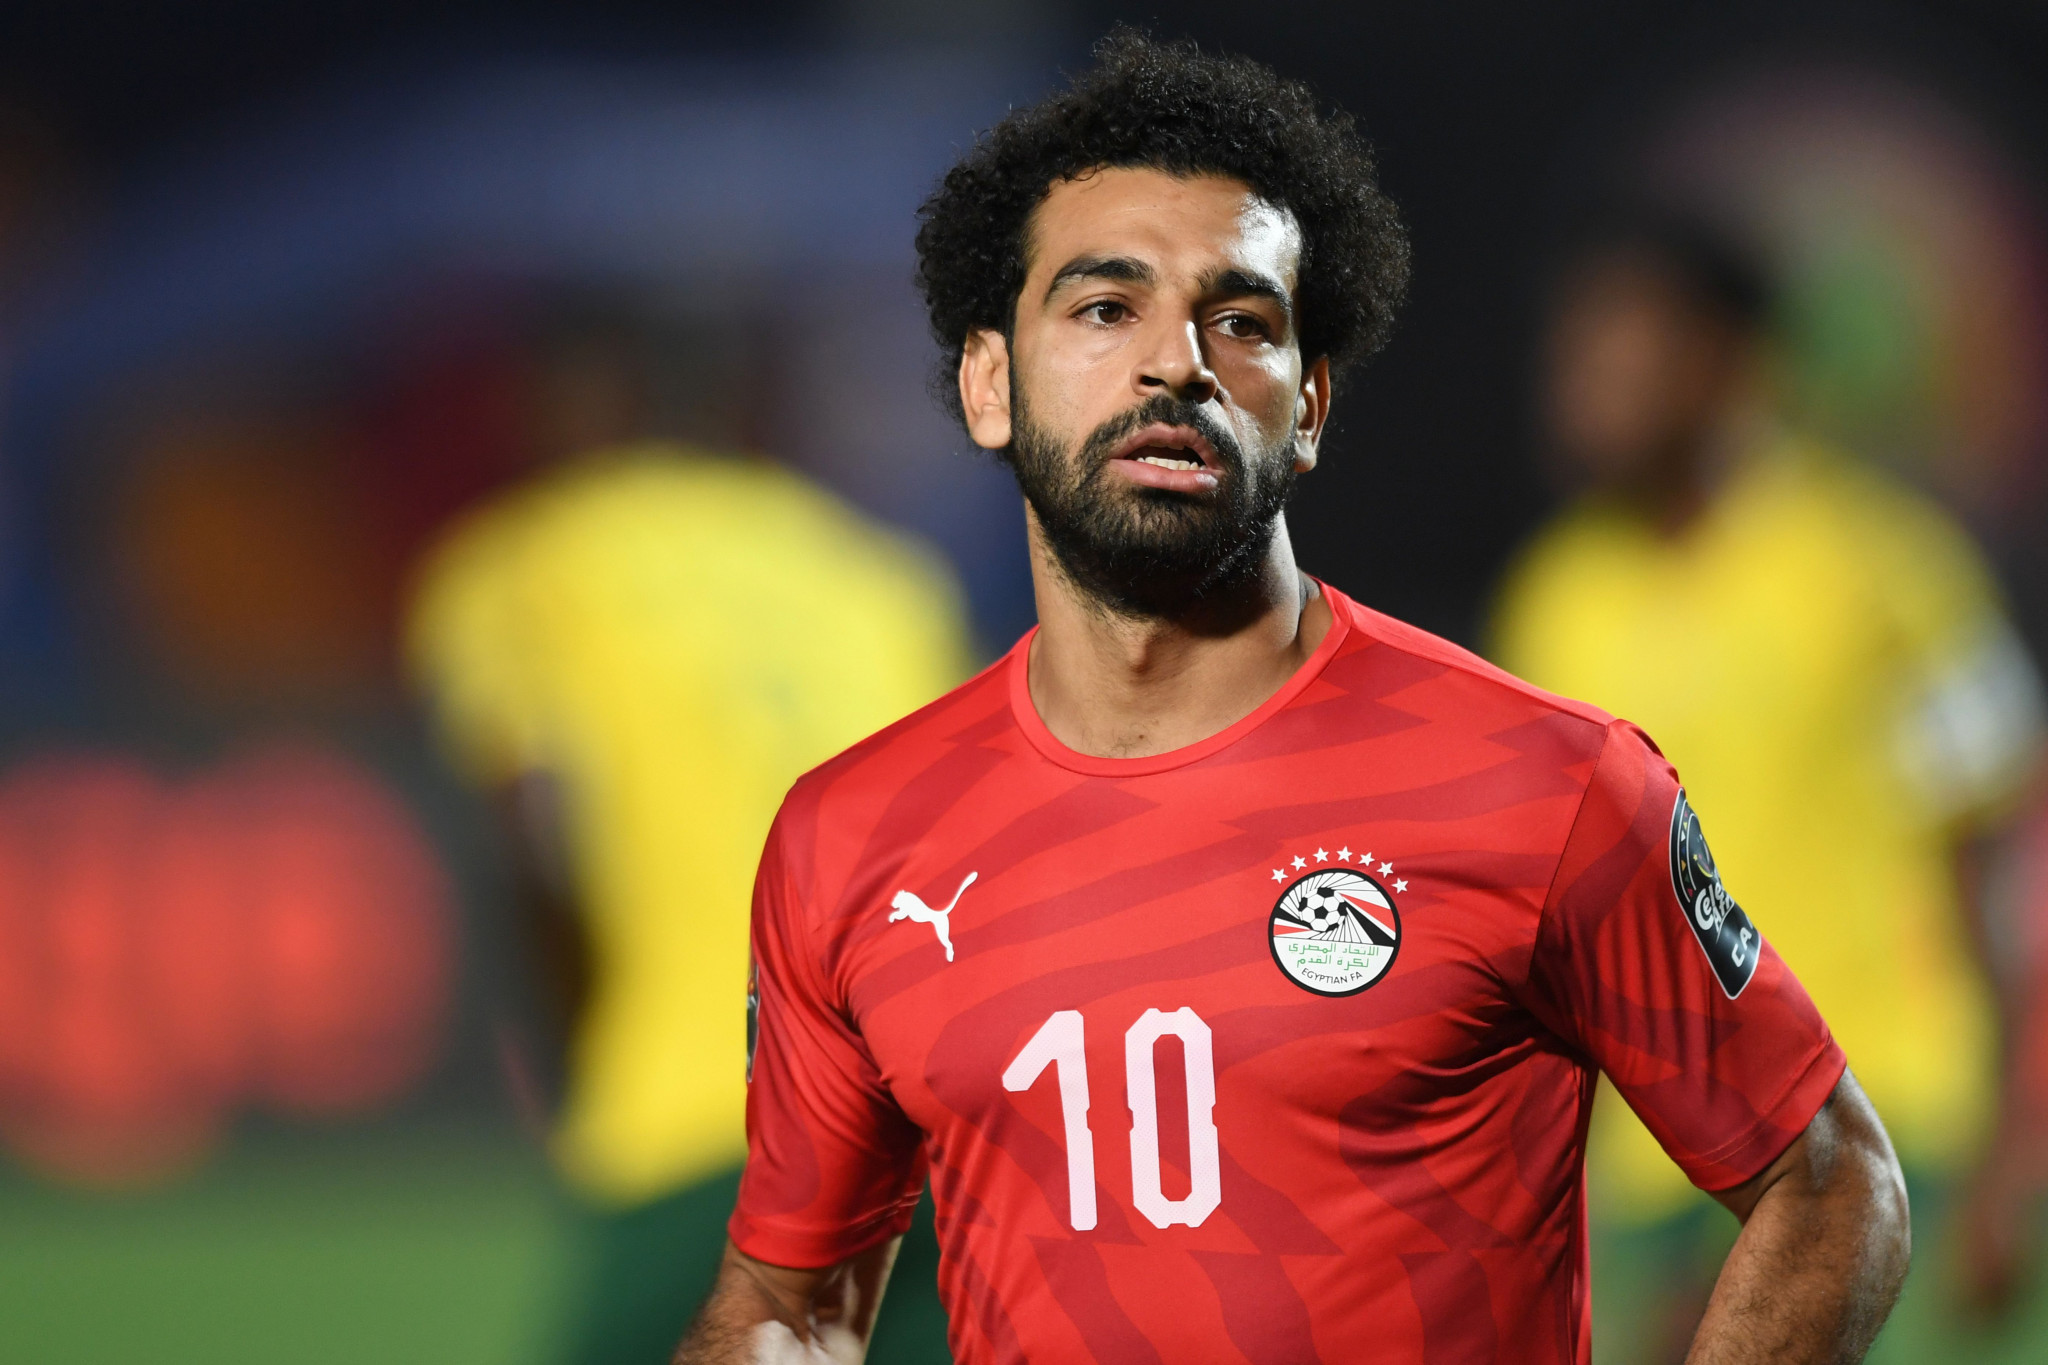 Mohamed Salah's Olympic status is still unknown ©Getty Images